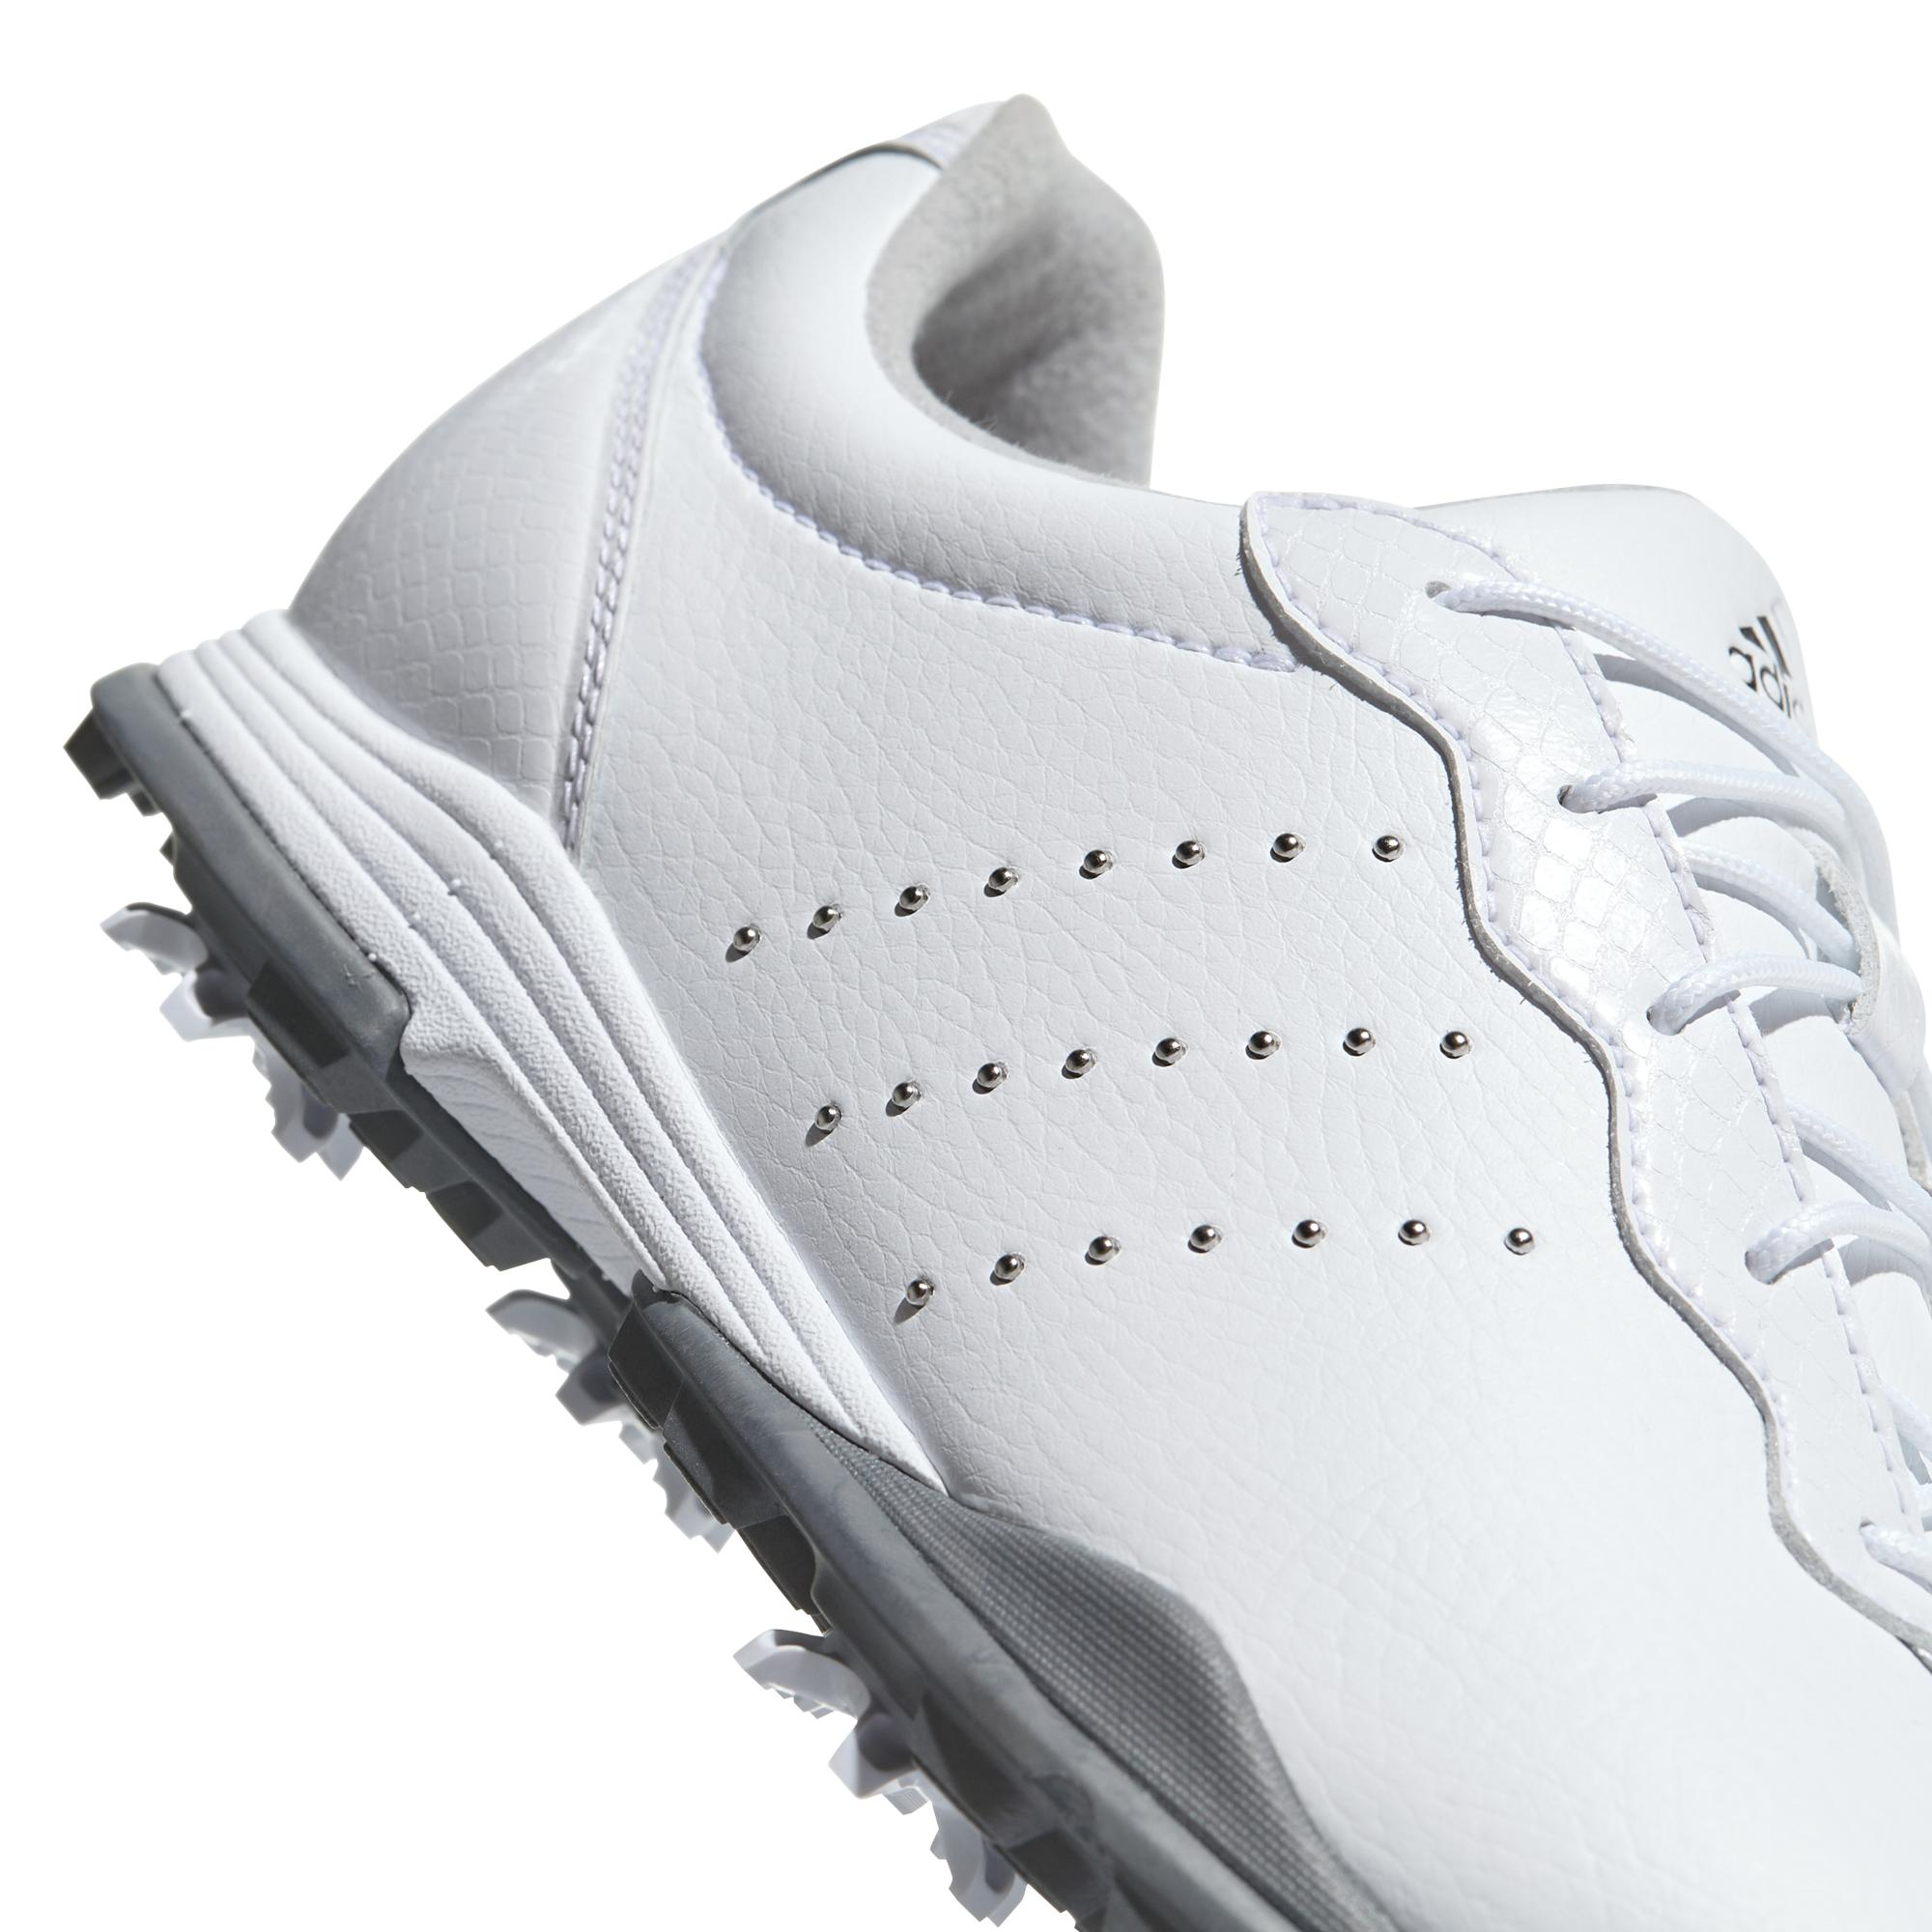 Women's Adipure Tour Spiked Golf Shoe - WHT/SIL